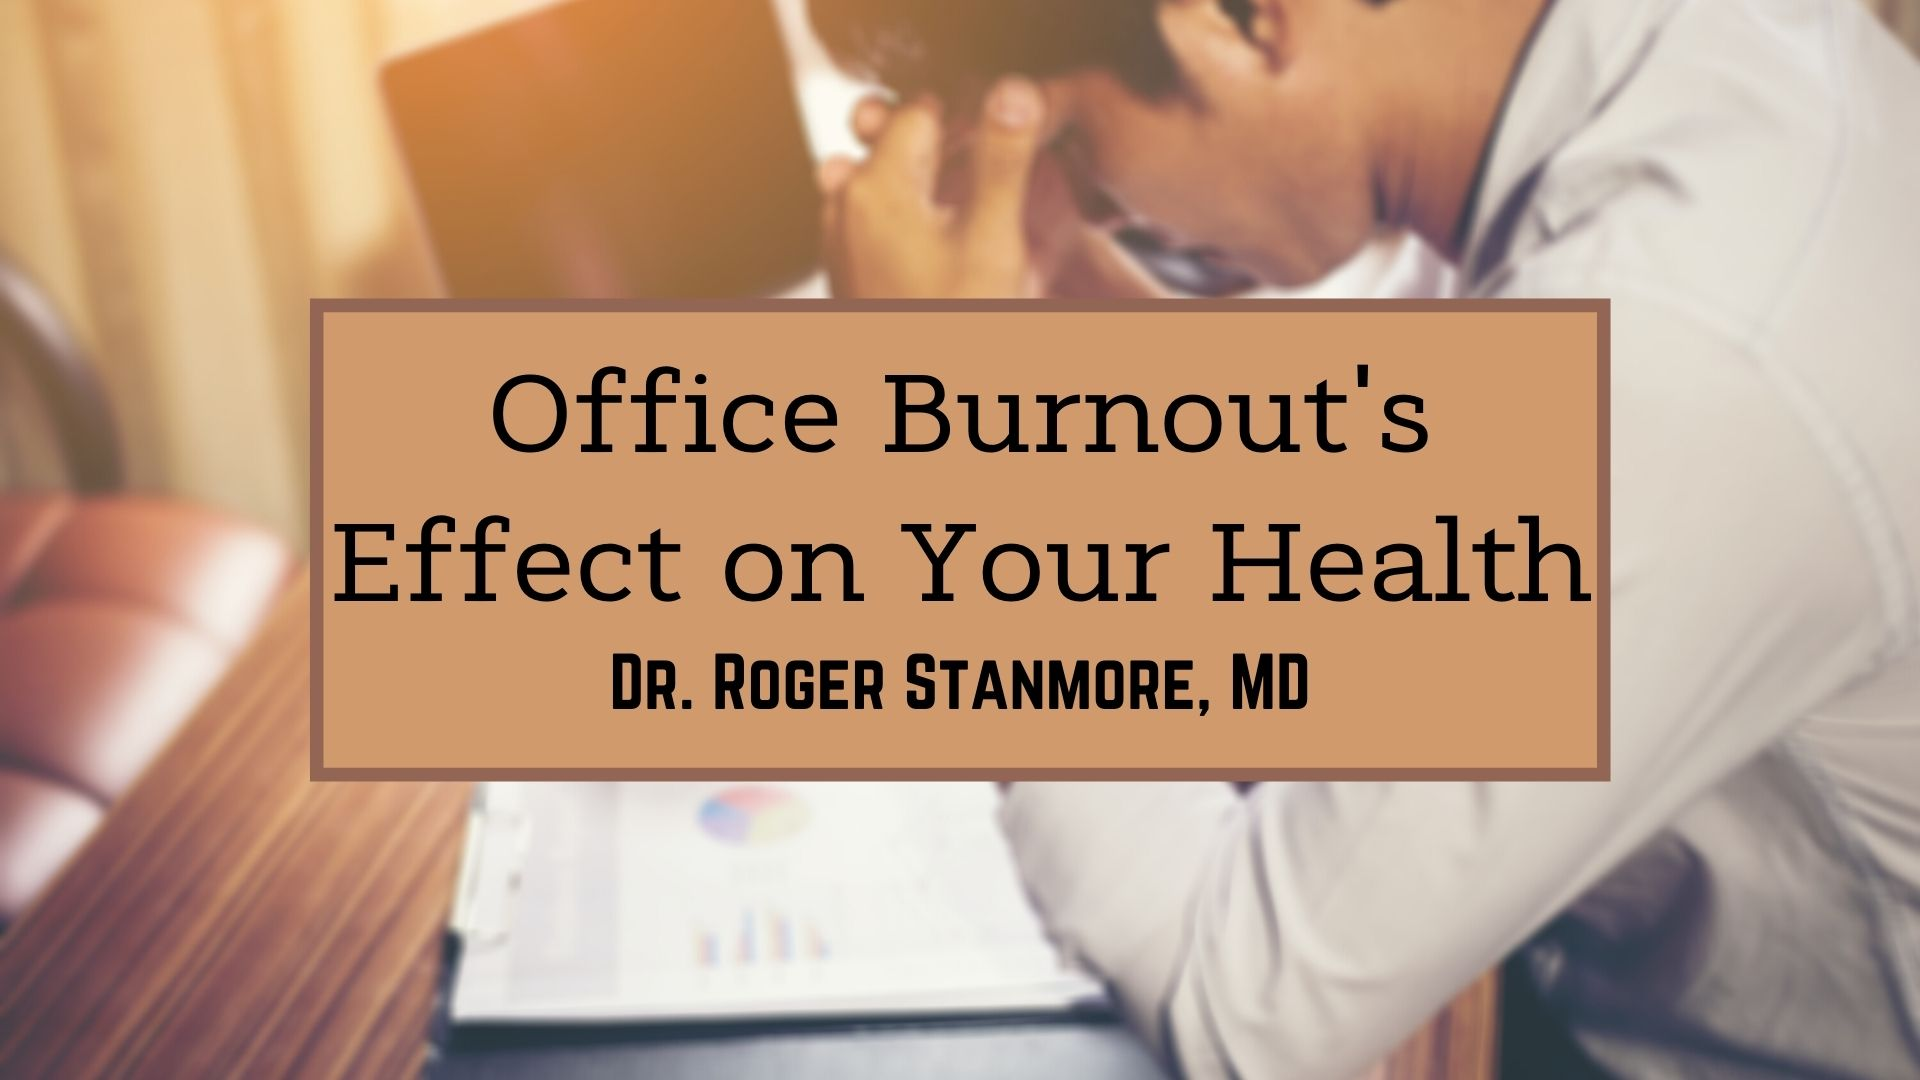 Dr. Roger Stanmore, MD burnout